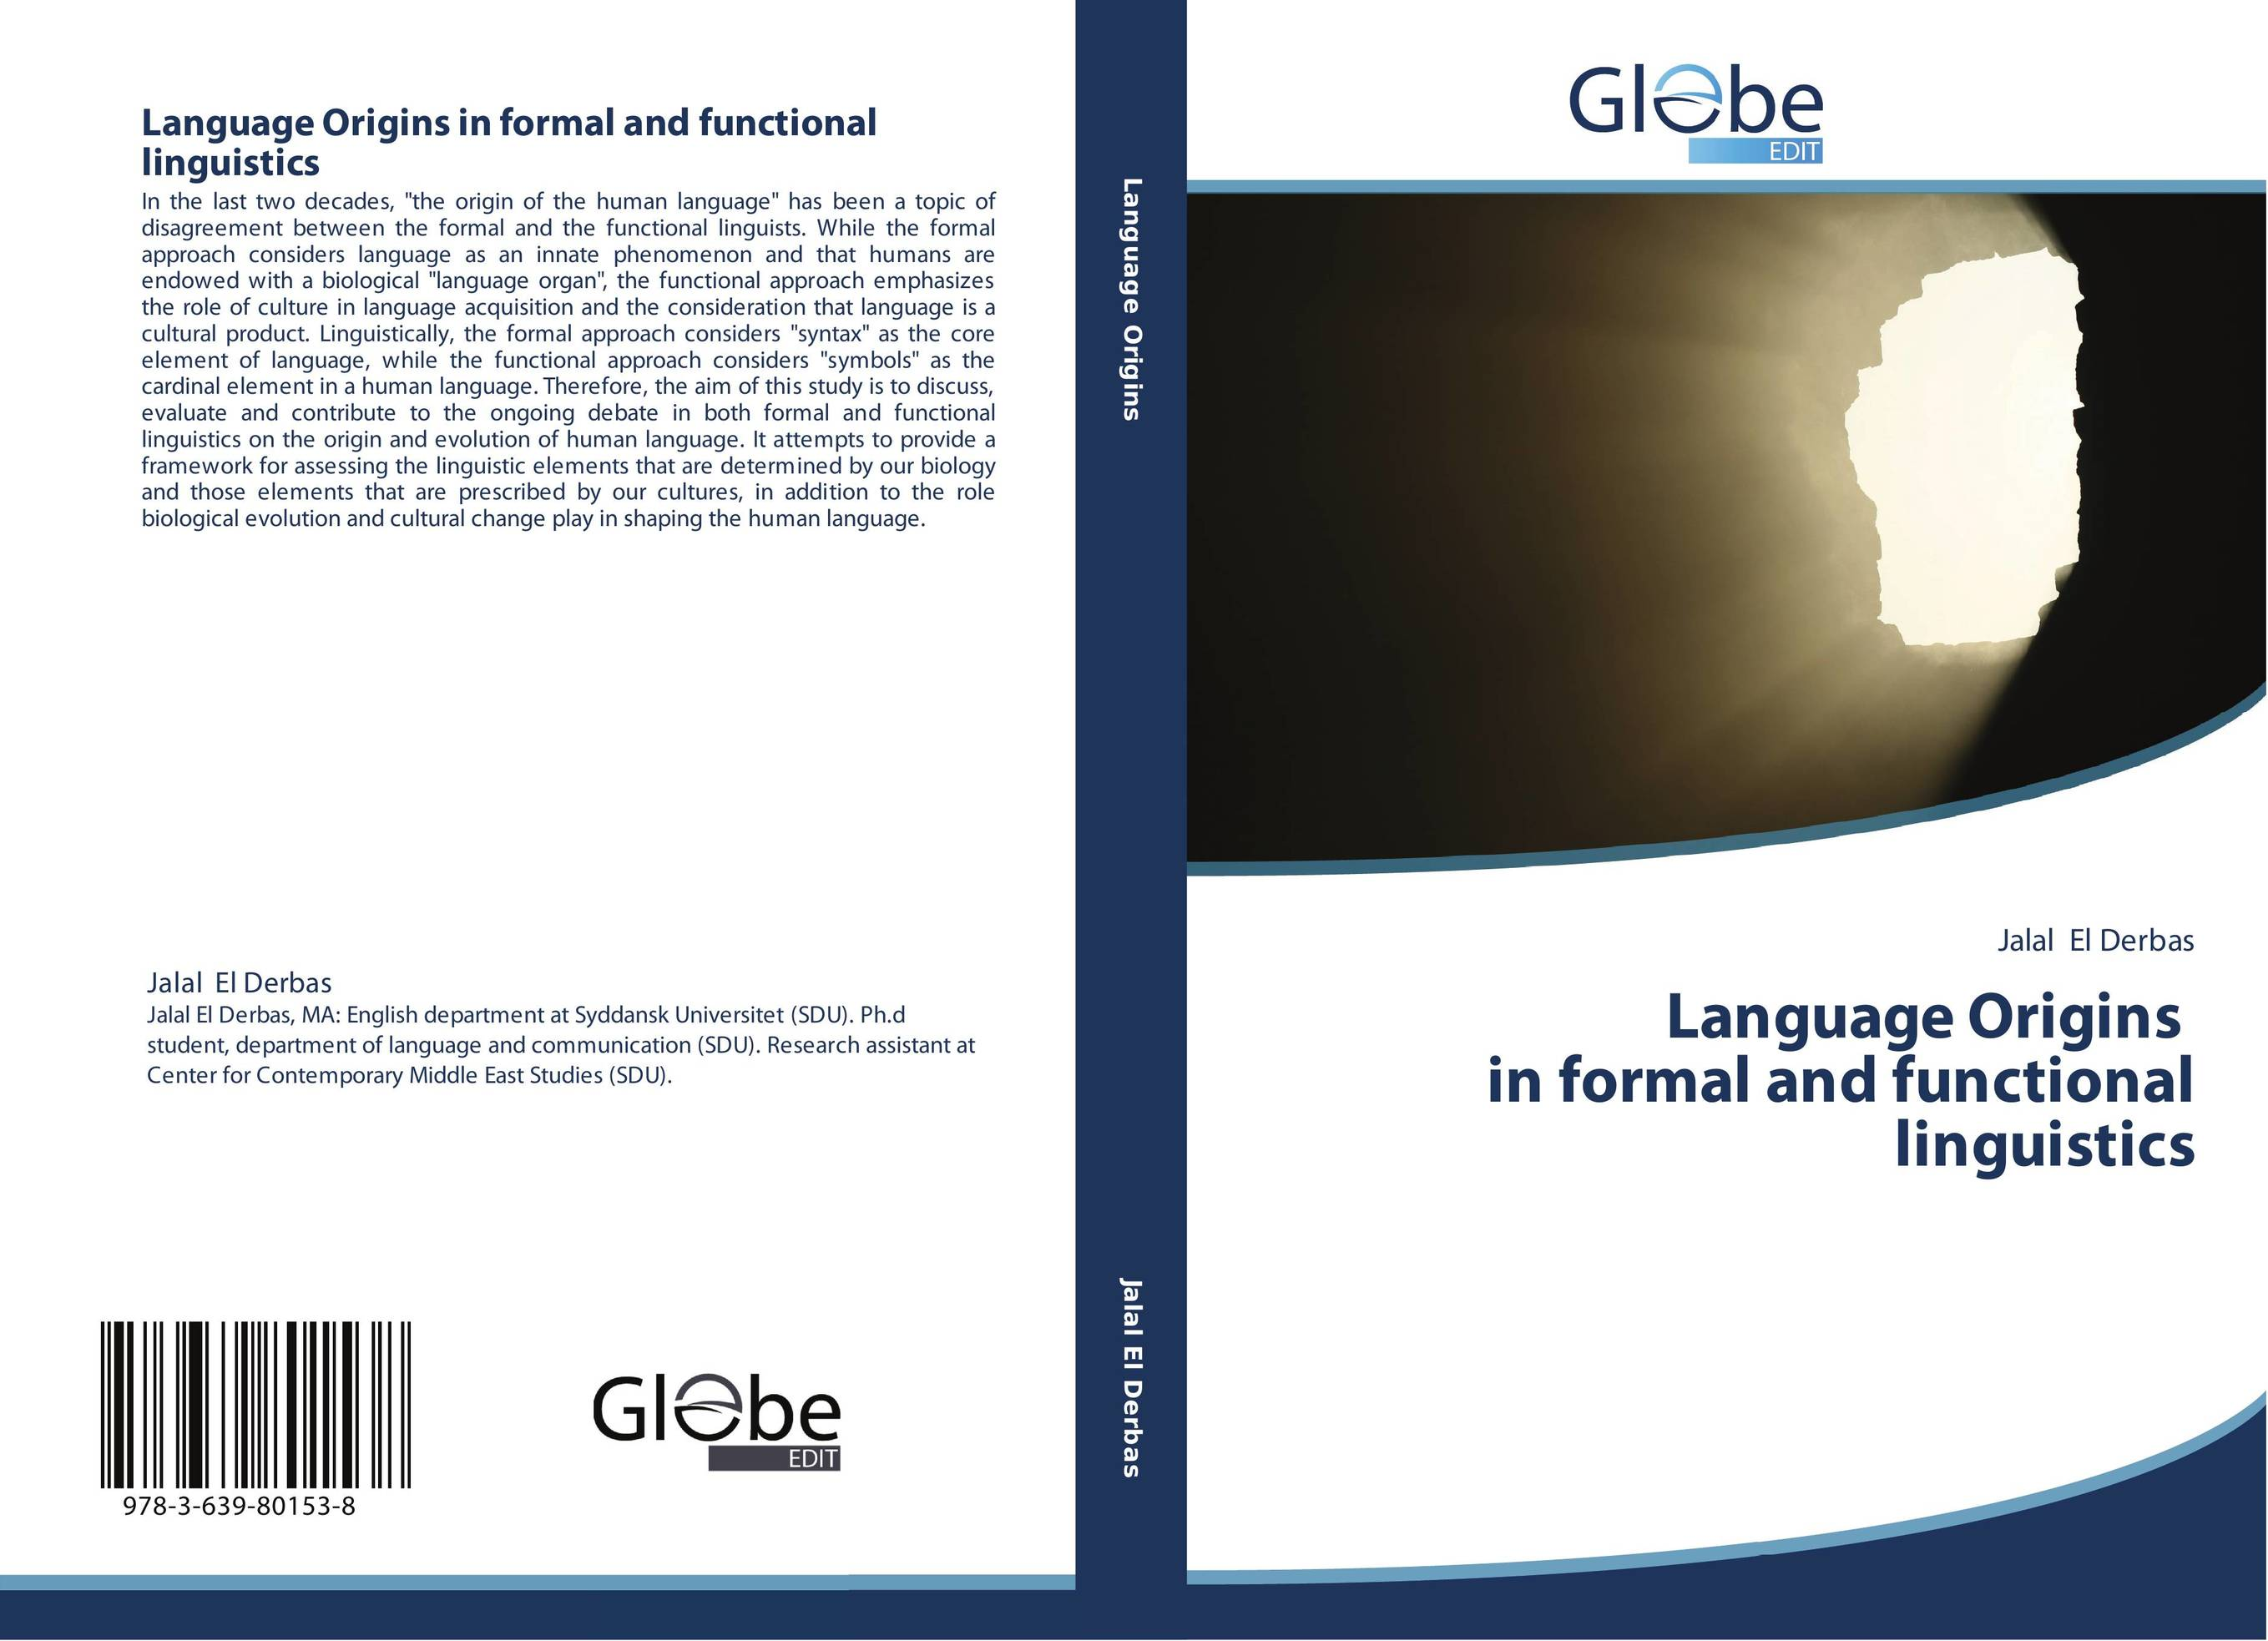 the origins of language Her ethnic origins are french the origins of human language remain a matter of considerable debate.